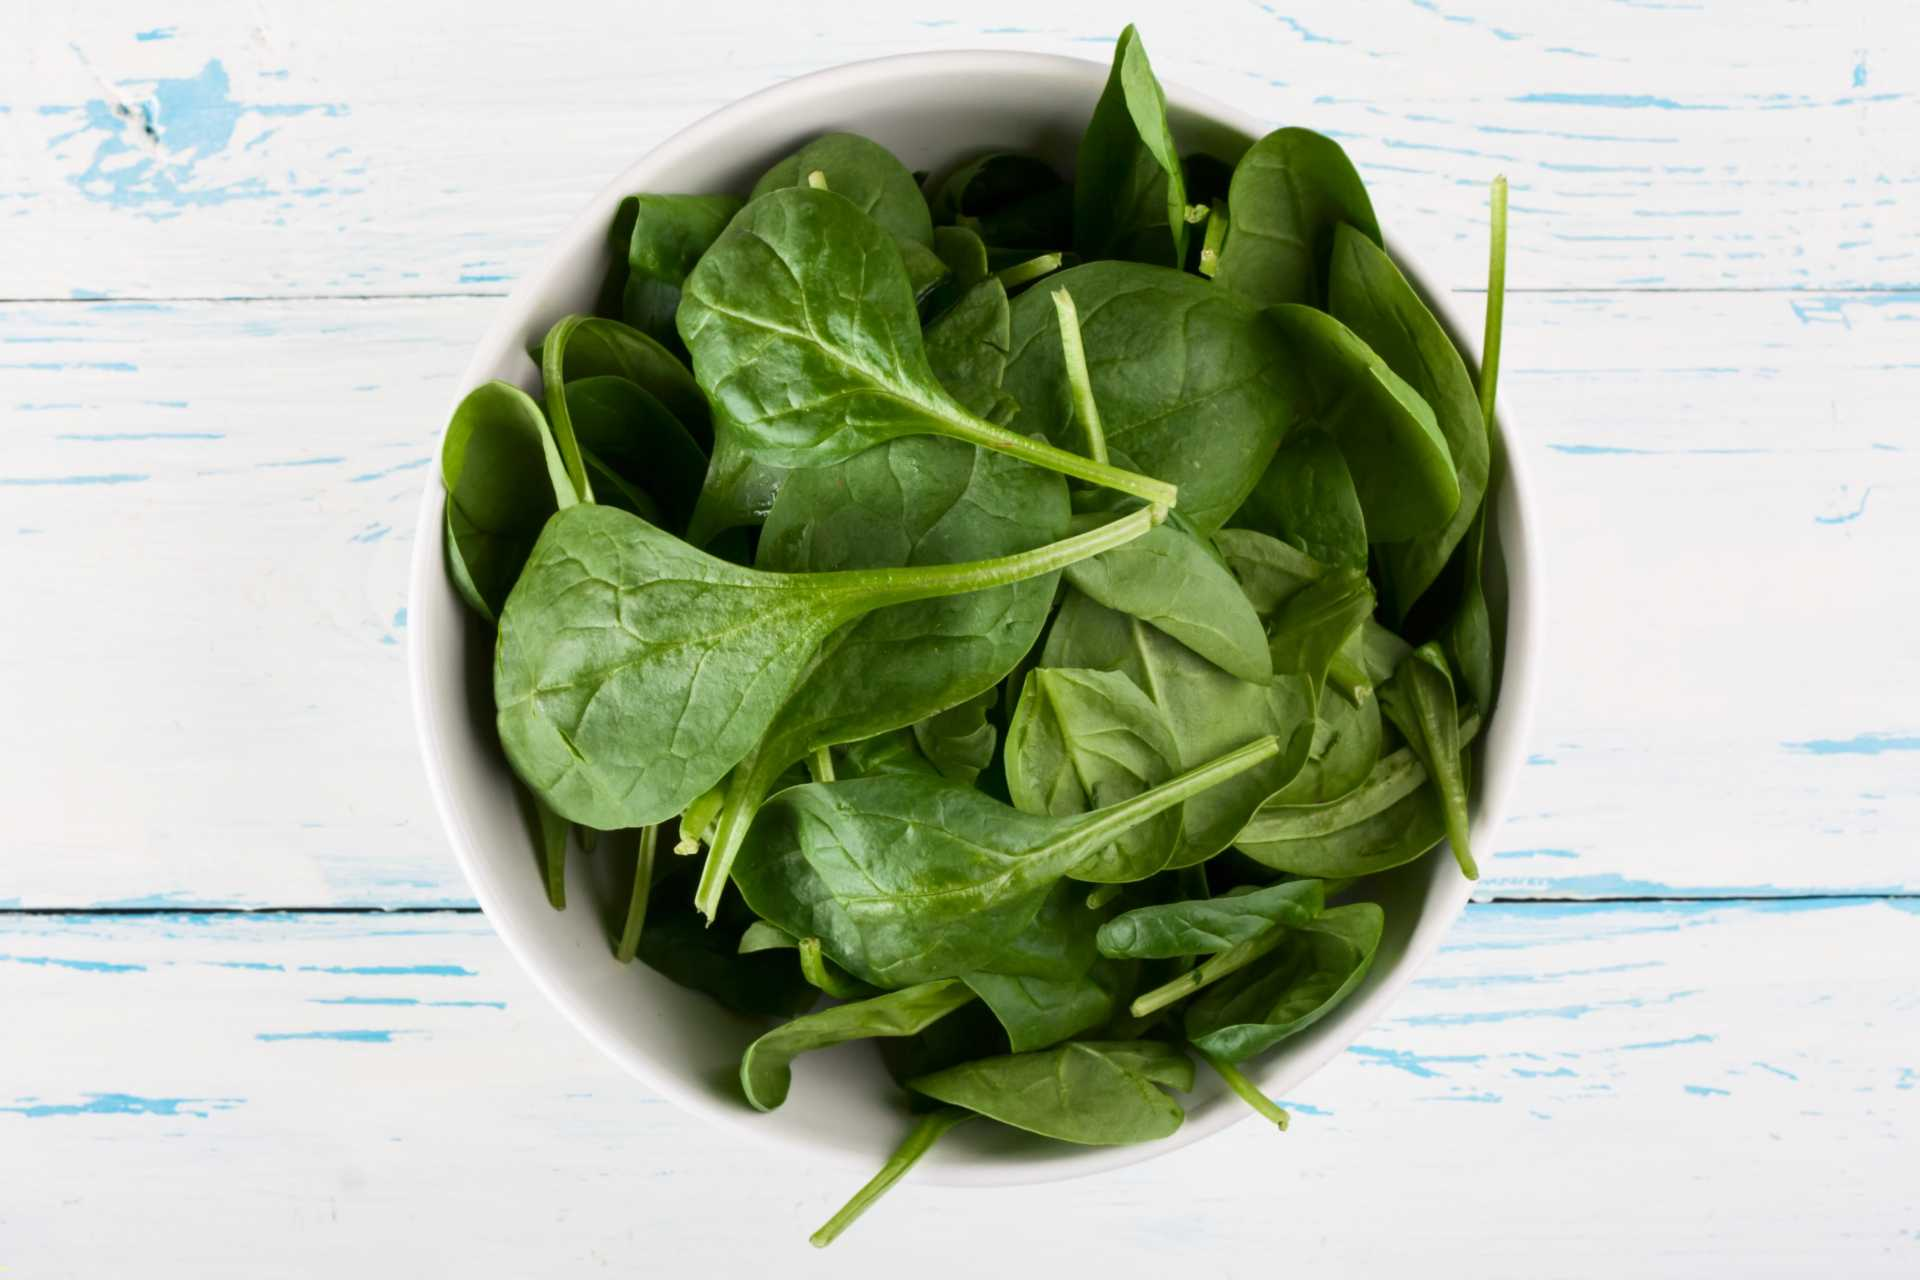 Spinach Image